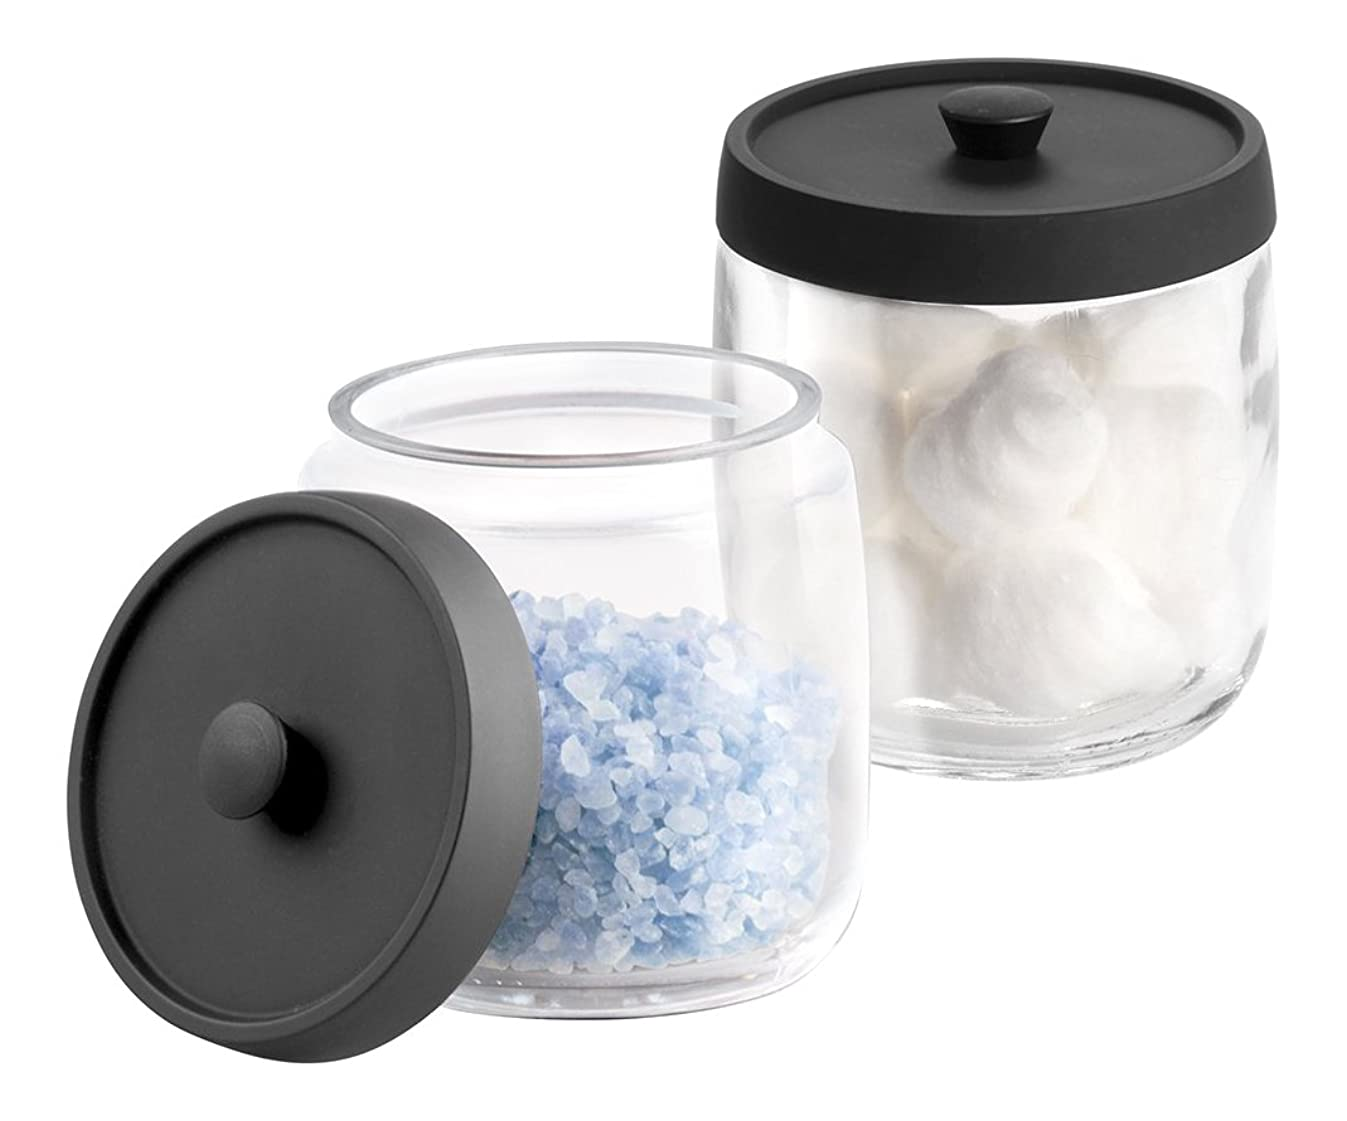 mDesign MetroDecor 2 Piece, Bathroom Vanity Glass Canister Jar for Cotton Balls, Swabs, Cosmetic Pads, Clear/Matte Black